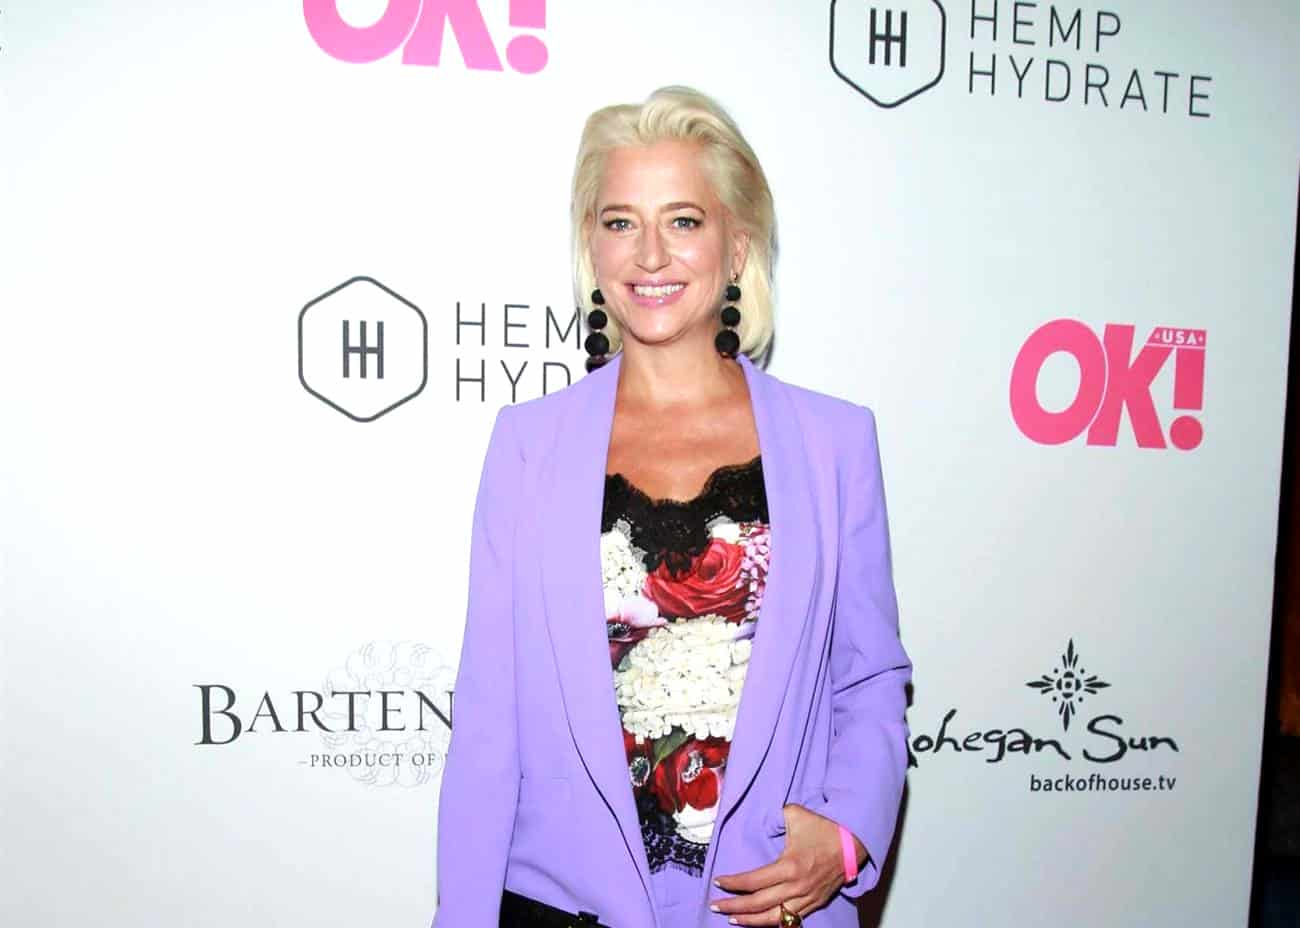 Dorinda Medley Reveals She Struggled With Anorexia and Dishes on New Memoir, Plus Will She Return to RHONY?